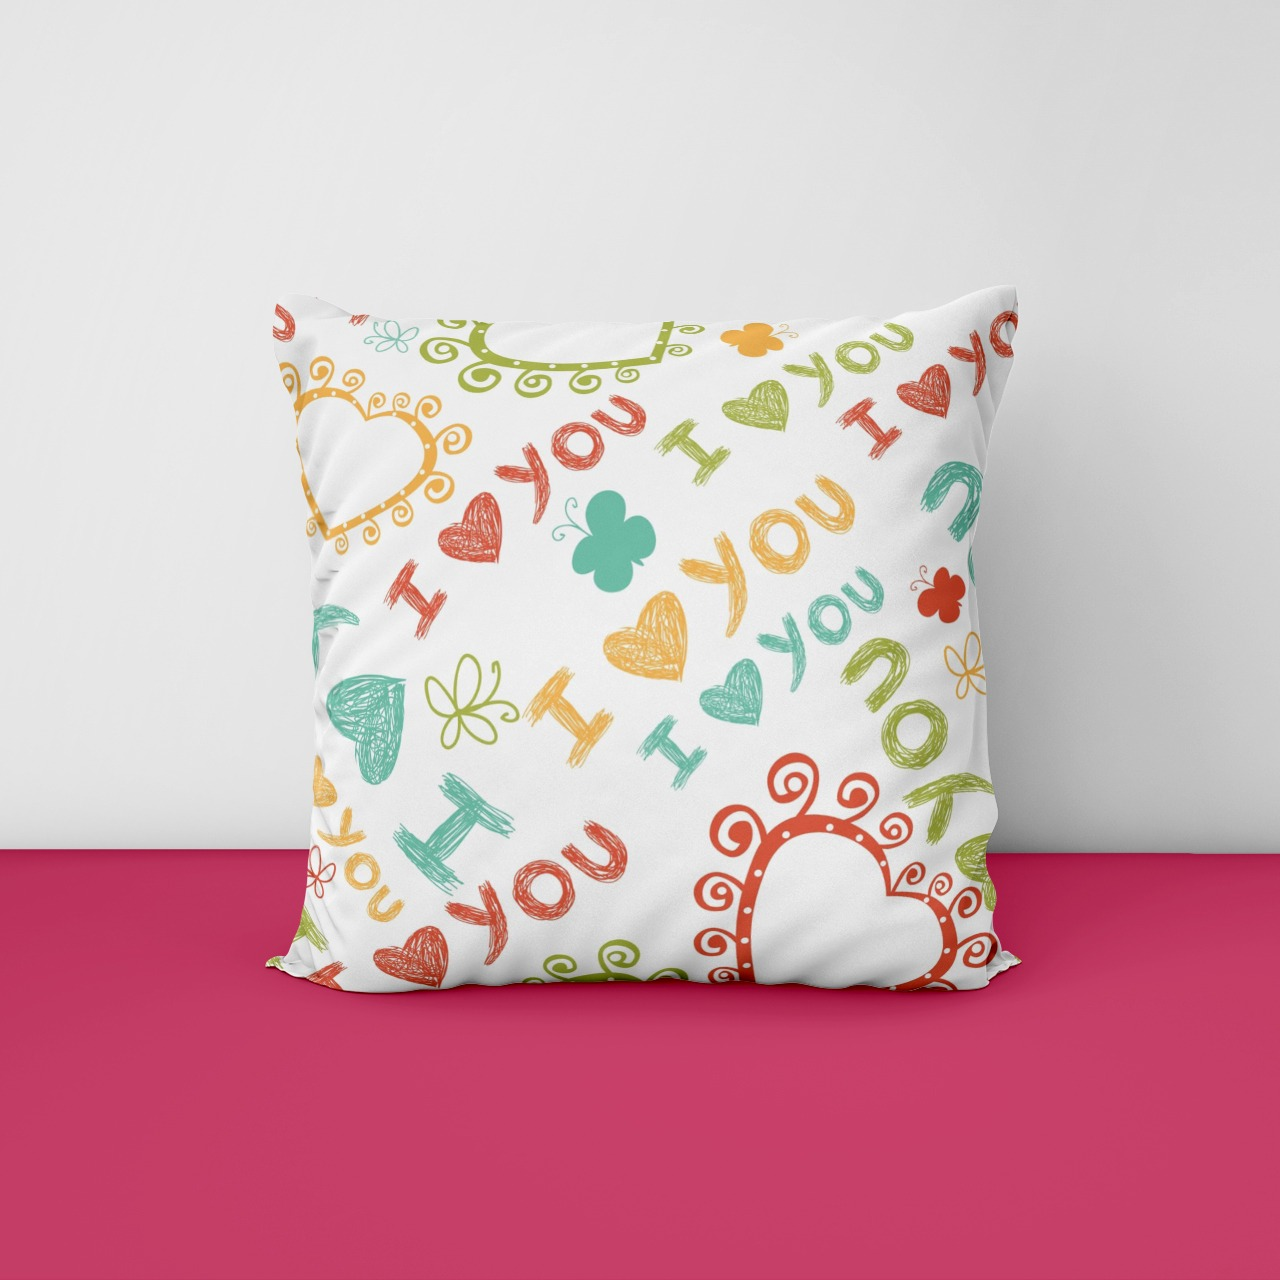 Love Customize Cushion